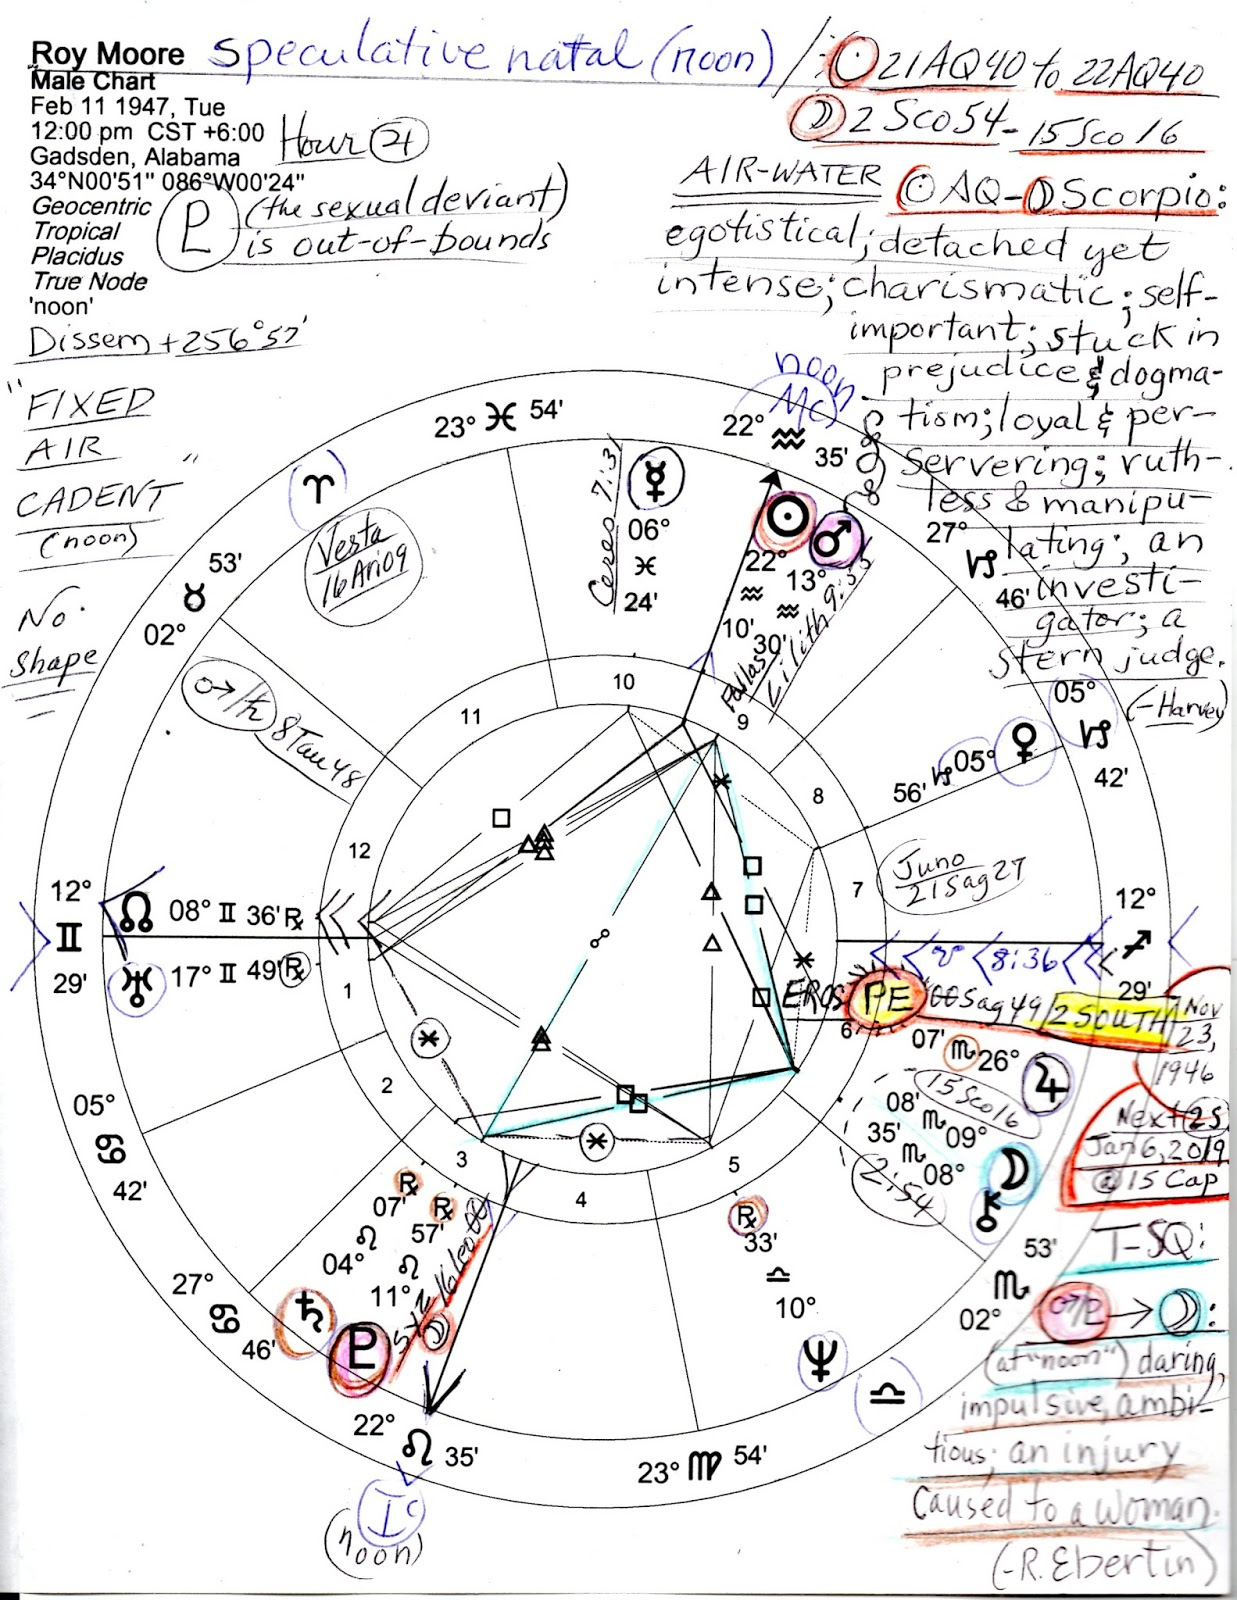 Stars over washington horoscope roy moore feb 11 1947 image a speculative noon horoscope of judge roy moore of alabama born roy stewart moore in gadsen al on february 11 1947 after trumps june 14 nvjuhfo Gallery